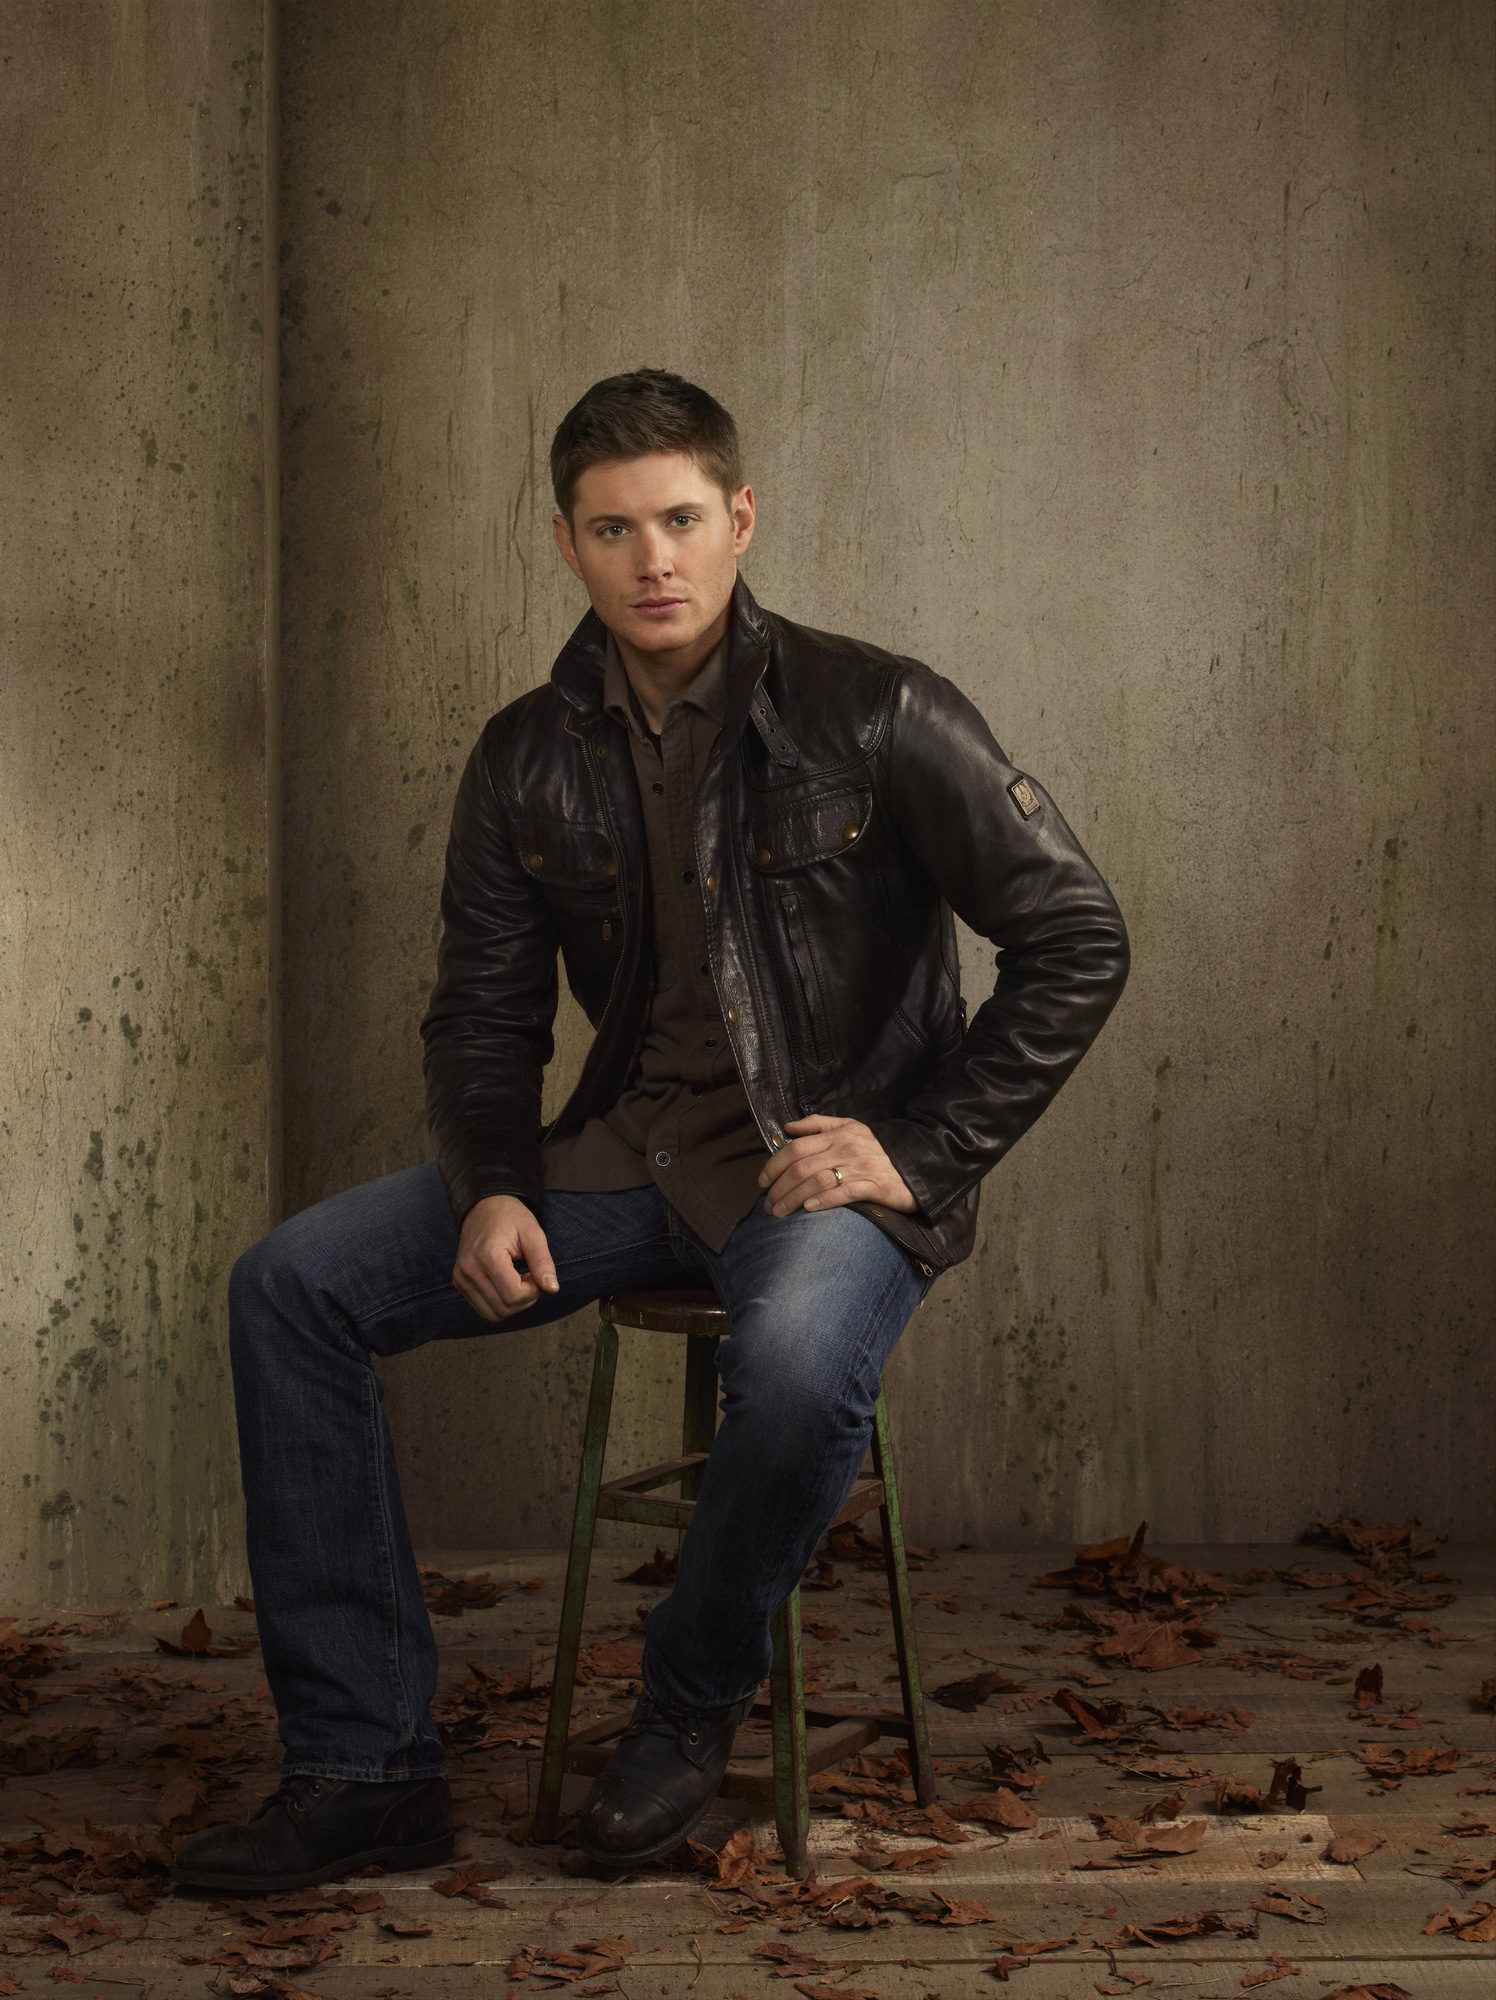 Jensen Ackles photo #416058